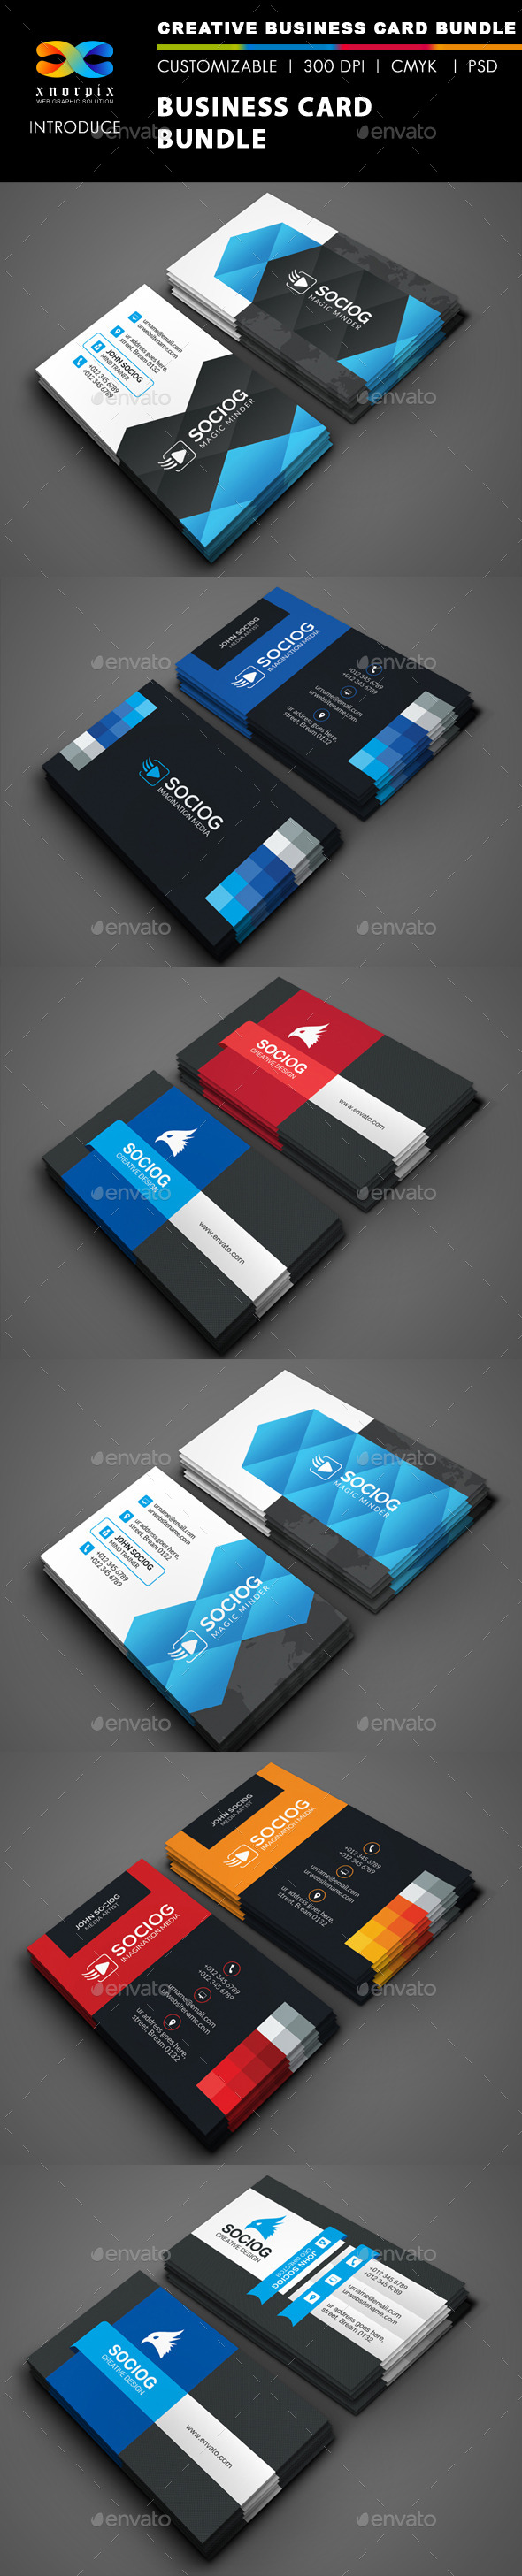 GraphicRiver Business Card Bundle 3 in 1-Vol 44 9411025